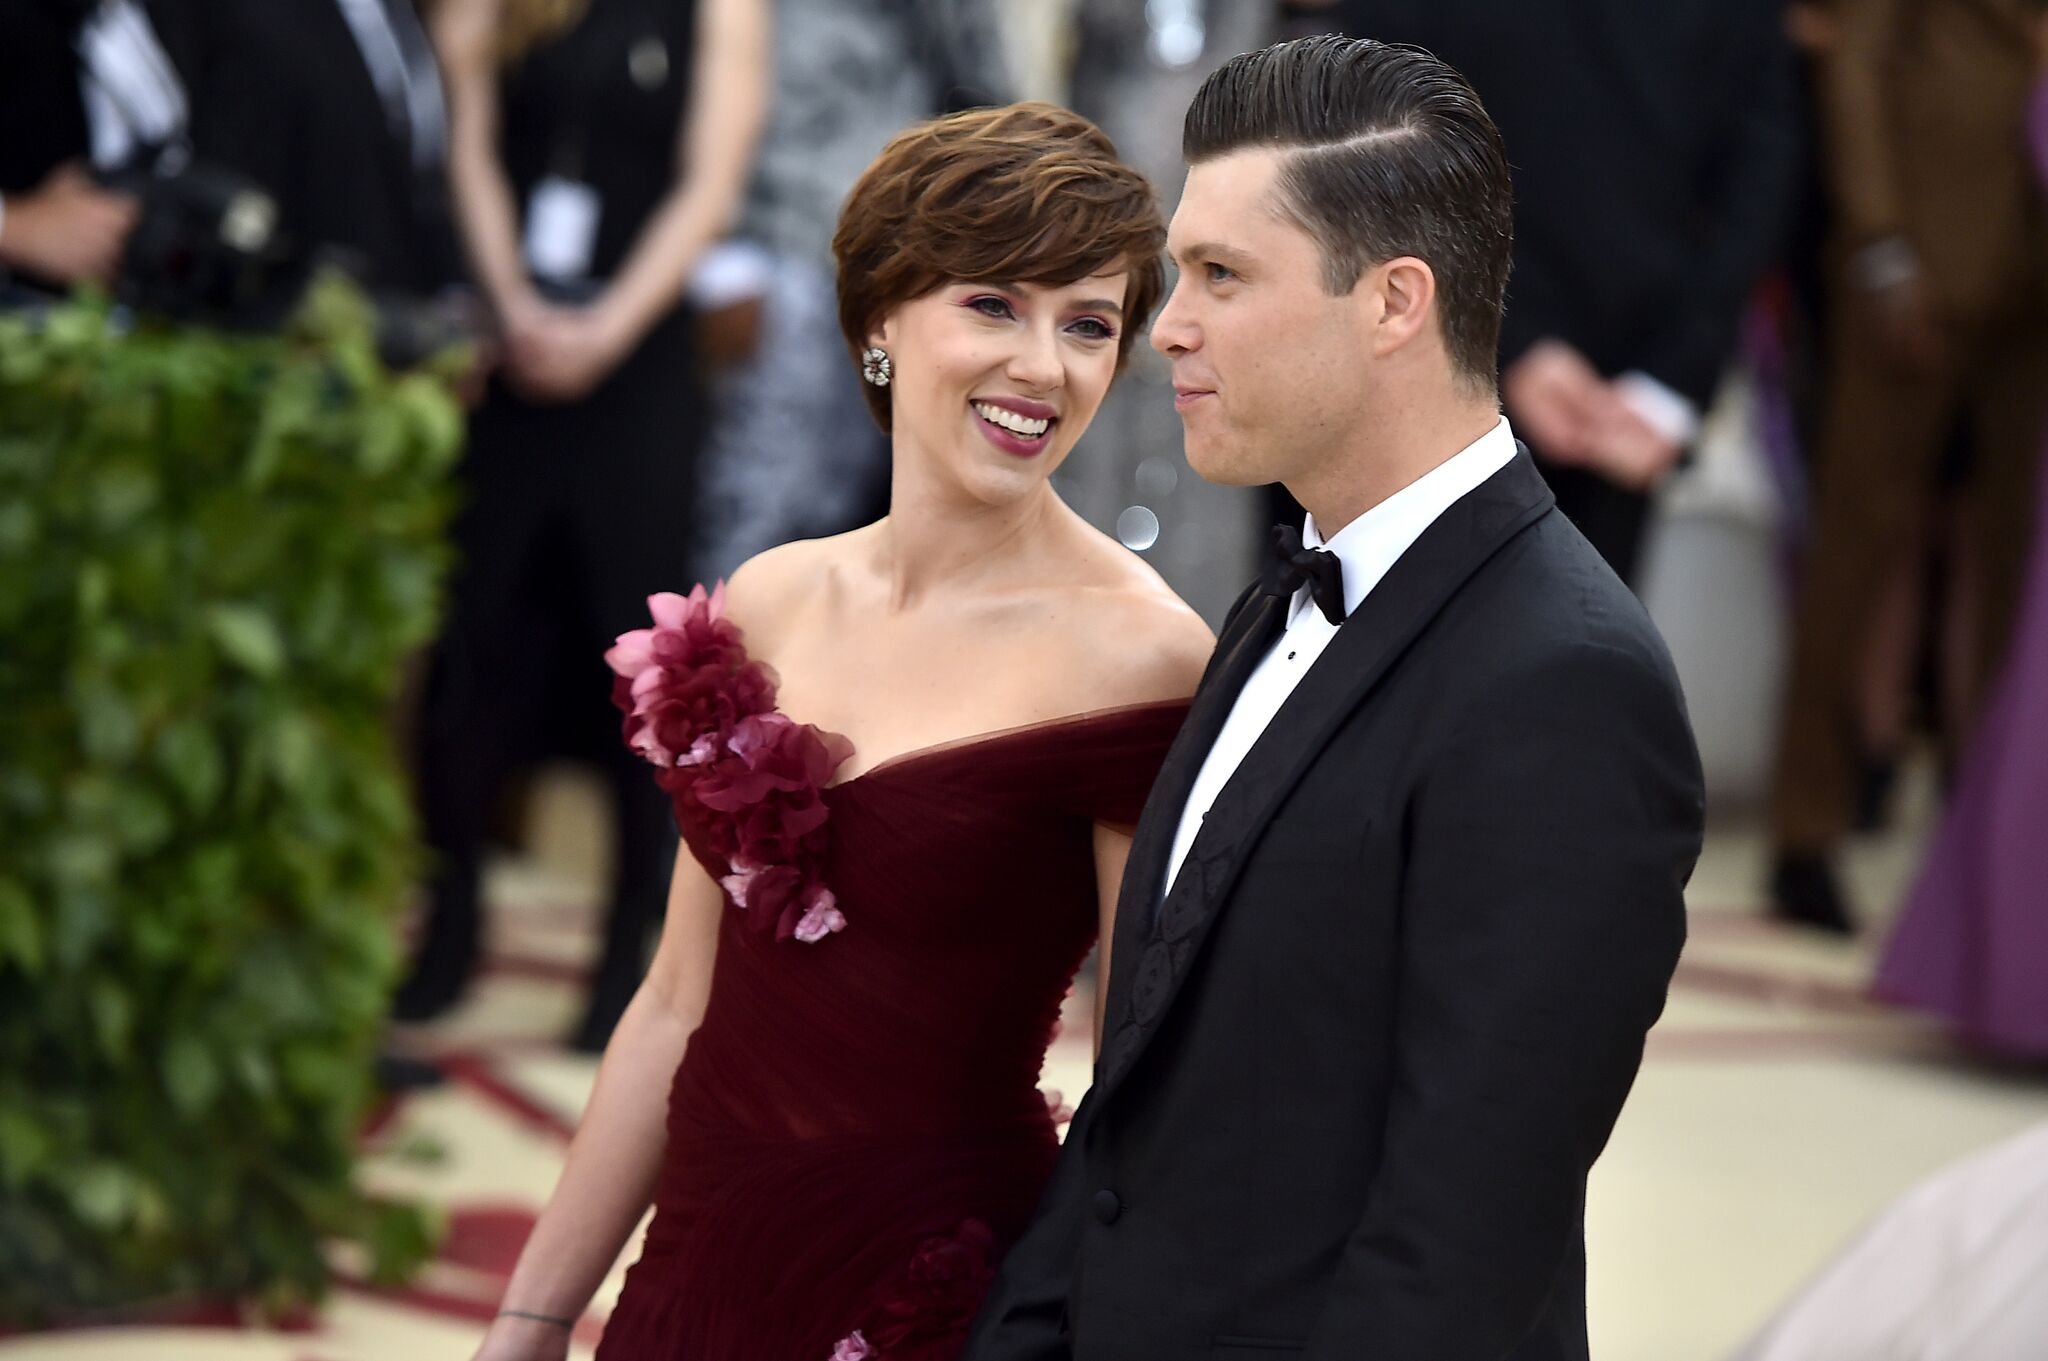 Scarlett Johansson and Colin Jost together at the MET Gala 2018 | Getty Images